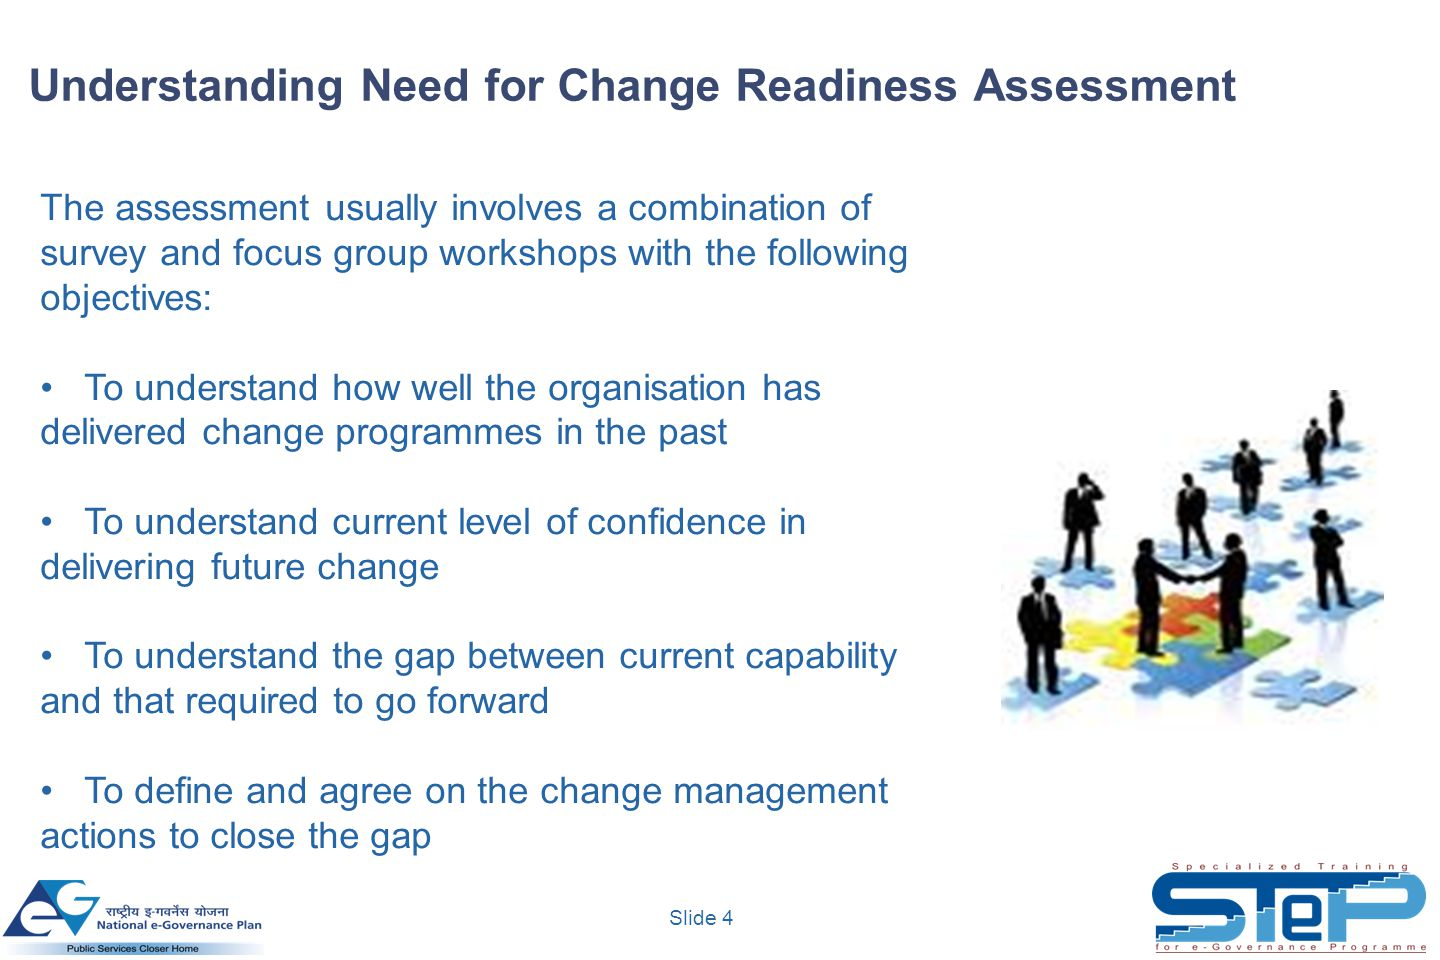 Understanding Need for Change Readiness Assessment